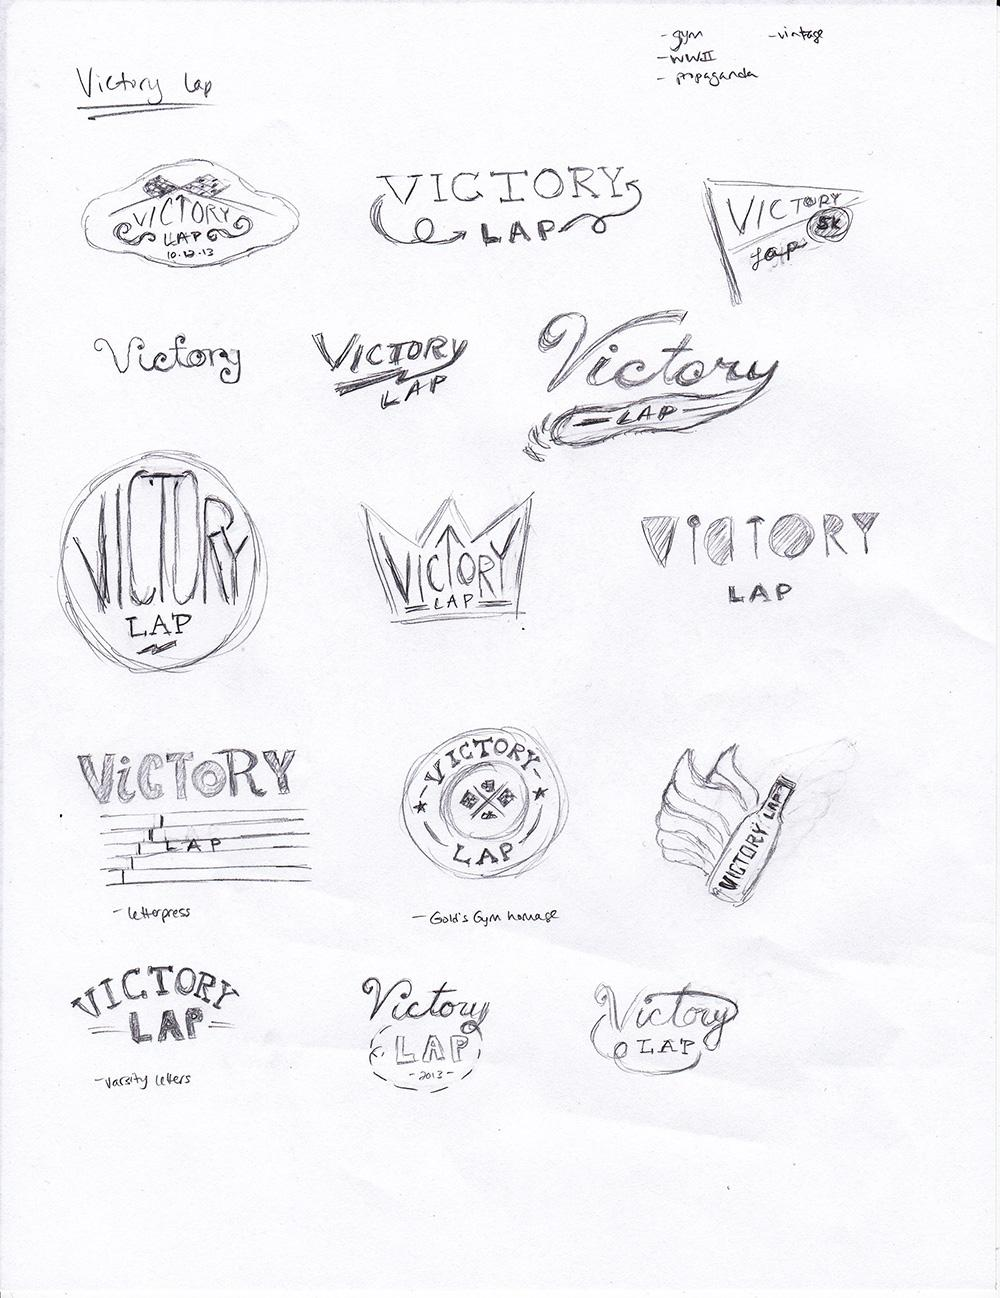 Victory Lap logo - image 1 - student project